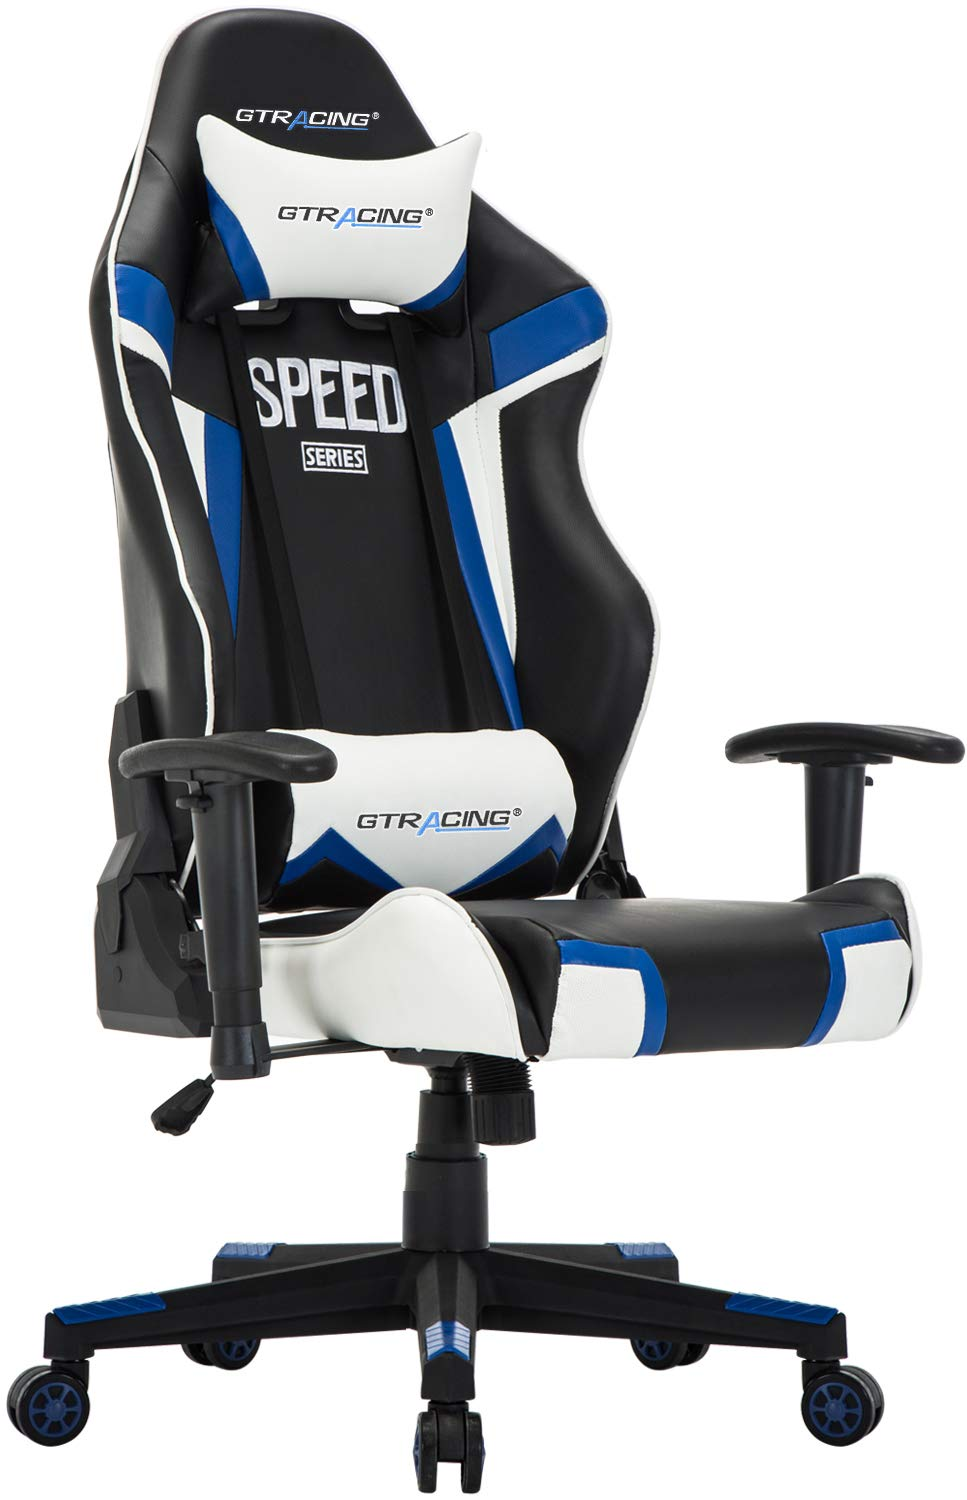 GTracing Gaming Chair Racing Office Chair High Back PU Leather Computer Desk Chair Executive and Ergonomic Swivel Chair with Headrest and Lumbar Support (Blue) by GTRACING